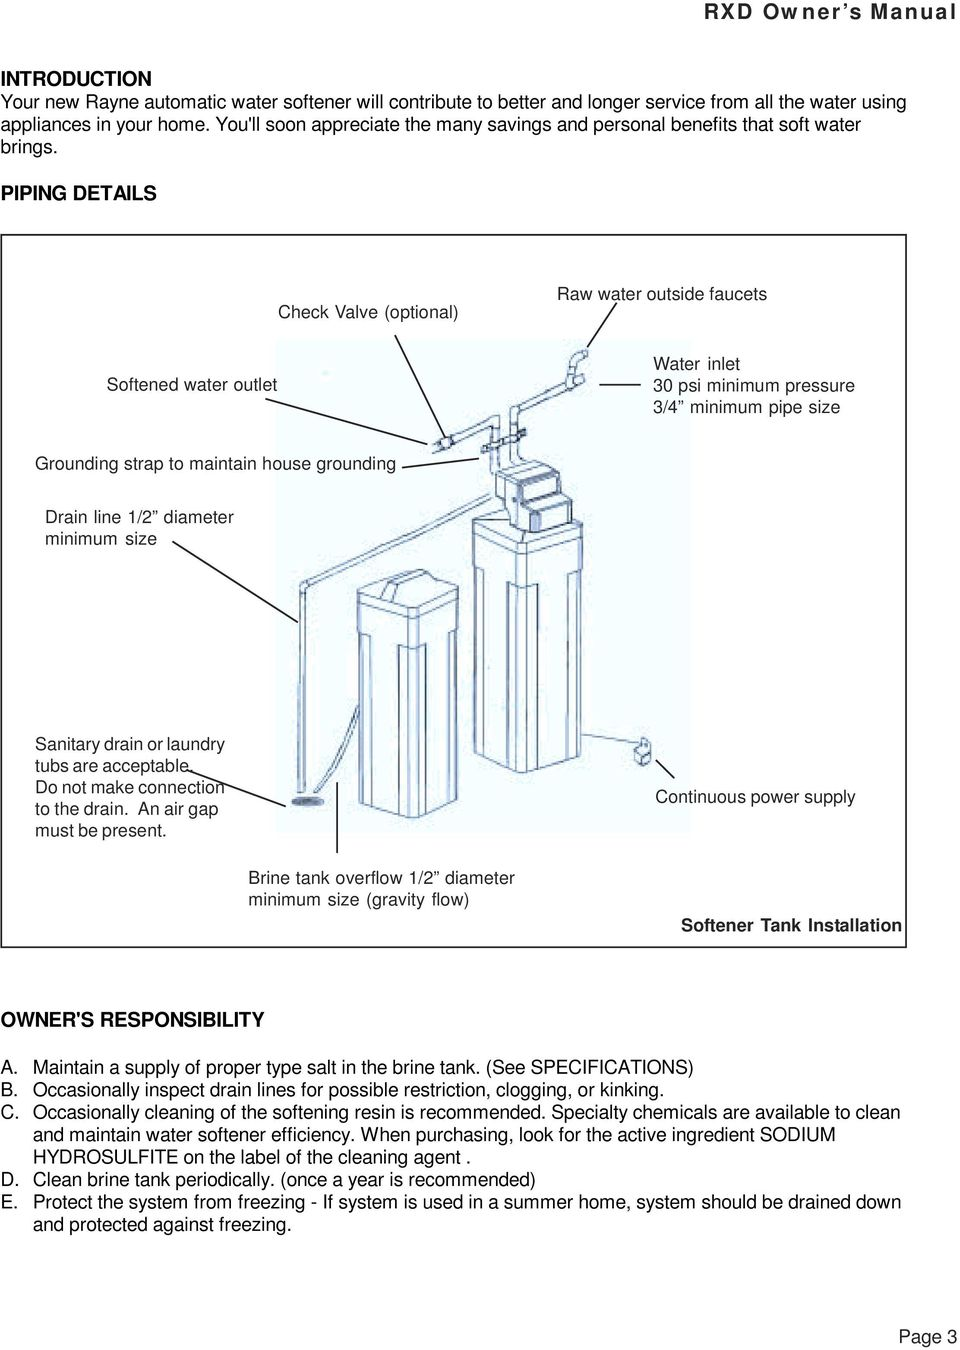 hight resolution of piping details check valve optional raw water outside faucets softened water outlet water inlet